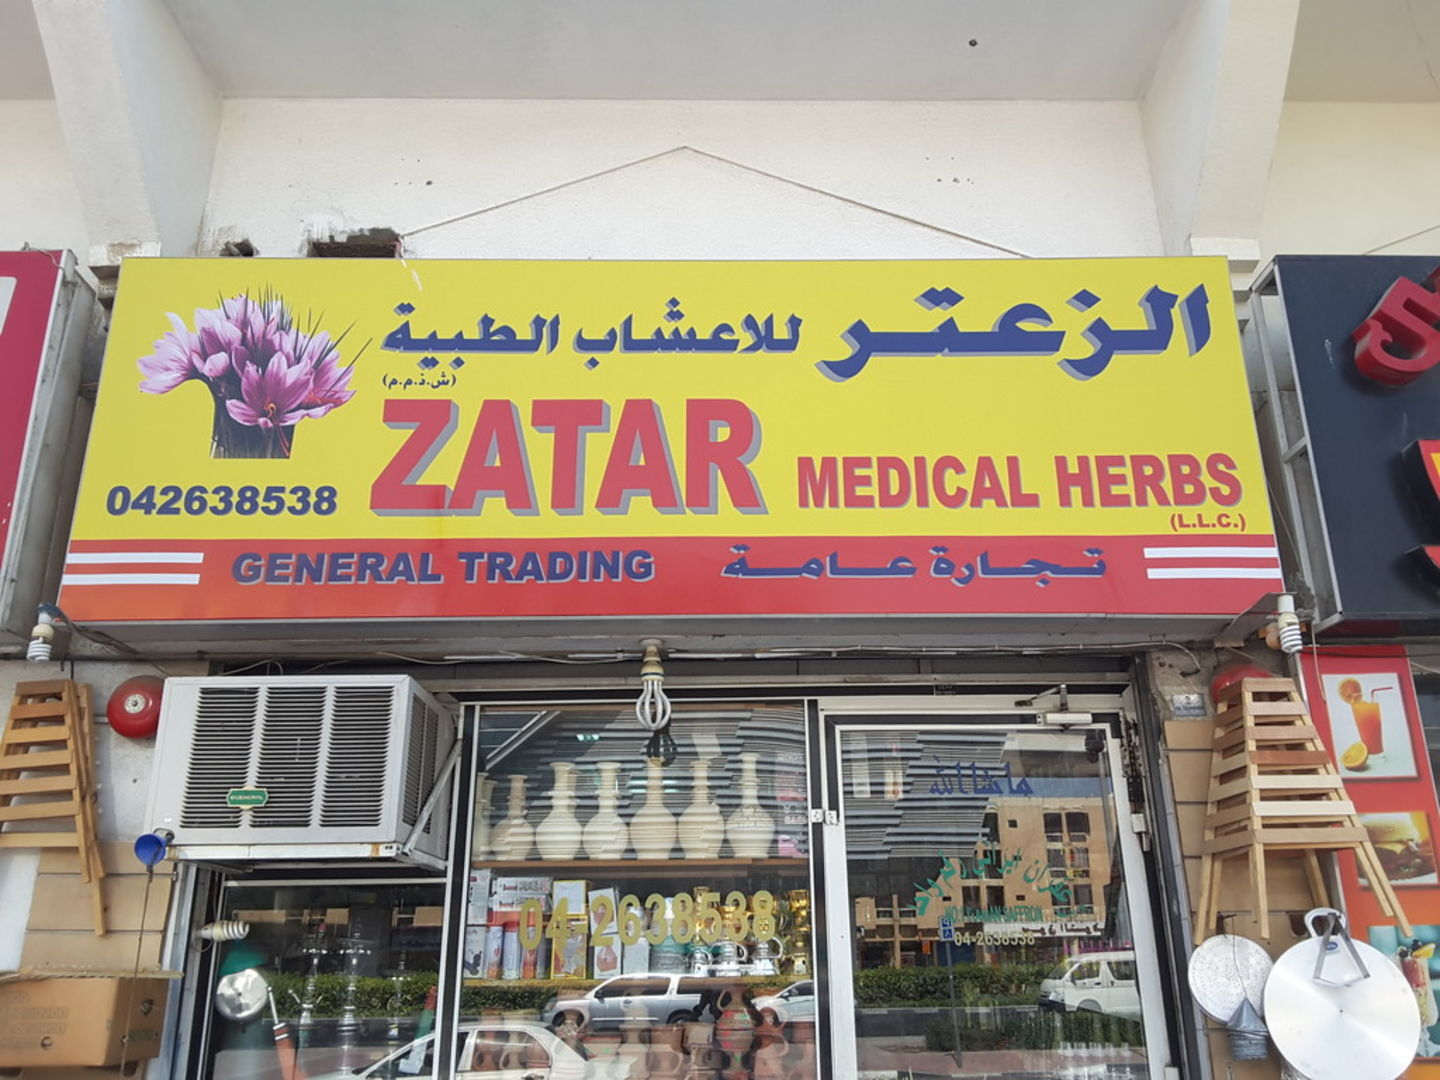 HiDubai-business-zatar-medical-herbs-beauty-wellness-health-homeopathy-alternative-medicine-al-twar-1-dubai-2